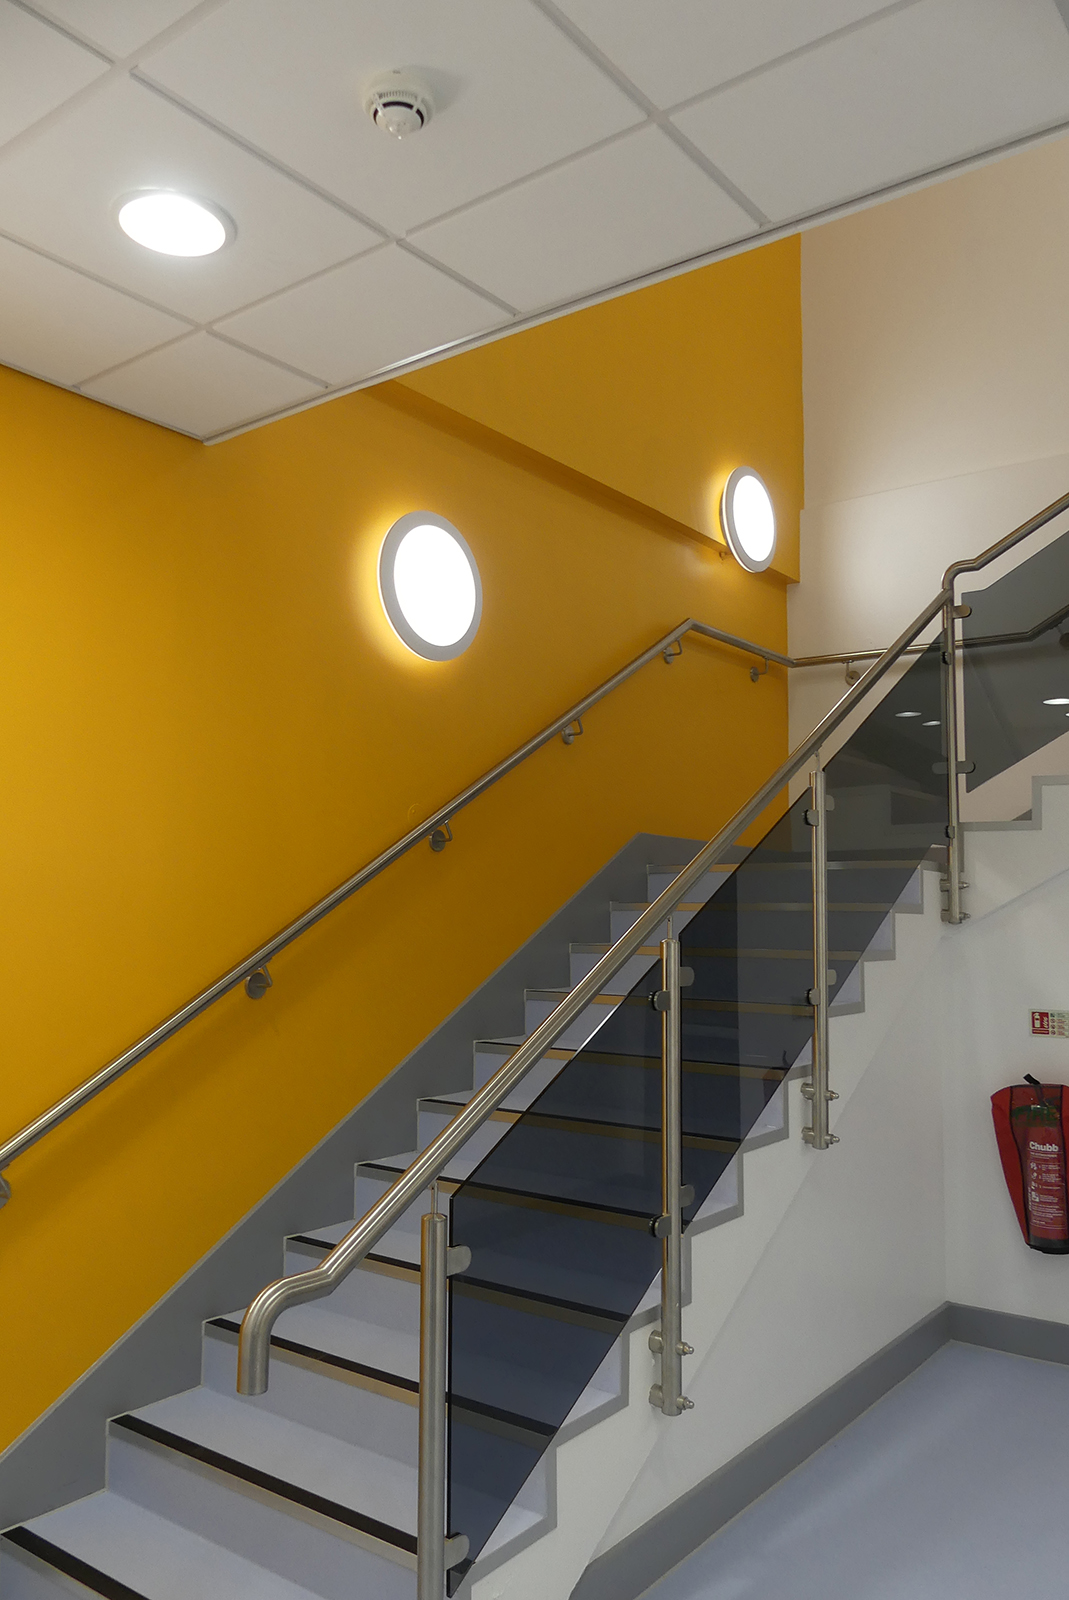 Staircase in our newly built block - February 2021